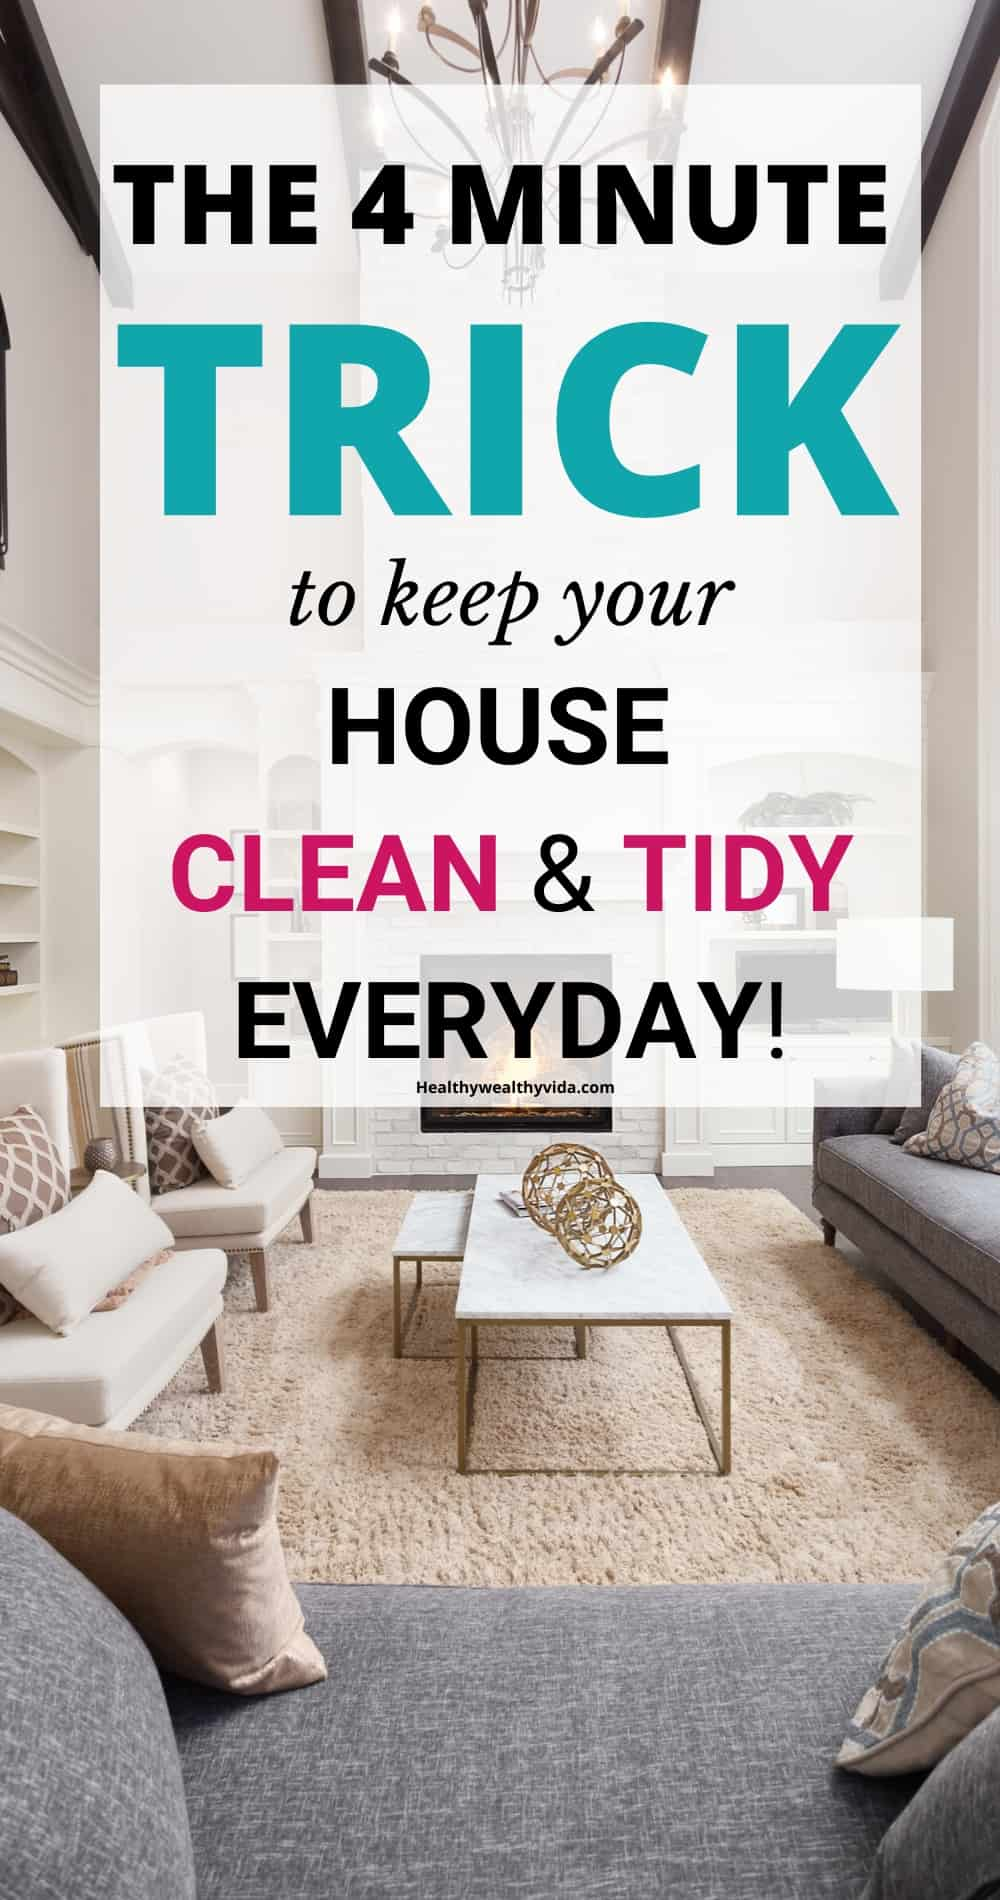 How to keep your home clean and tidy everyday in 4 minutes